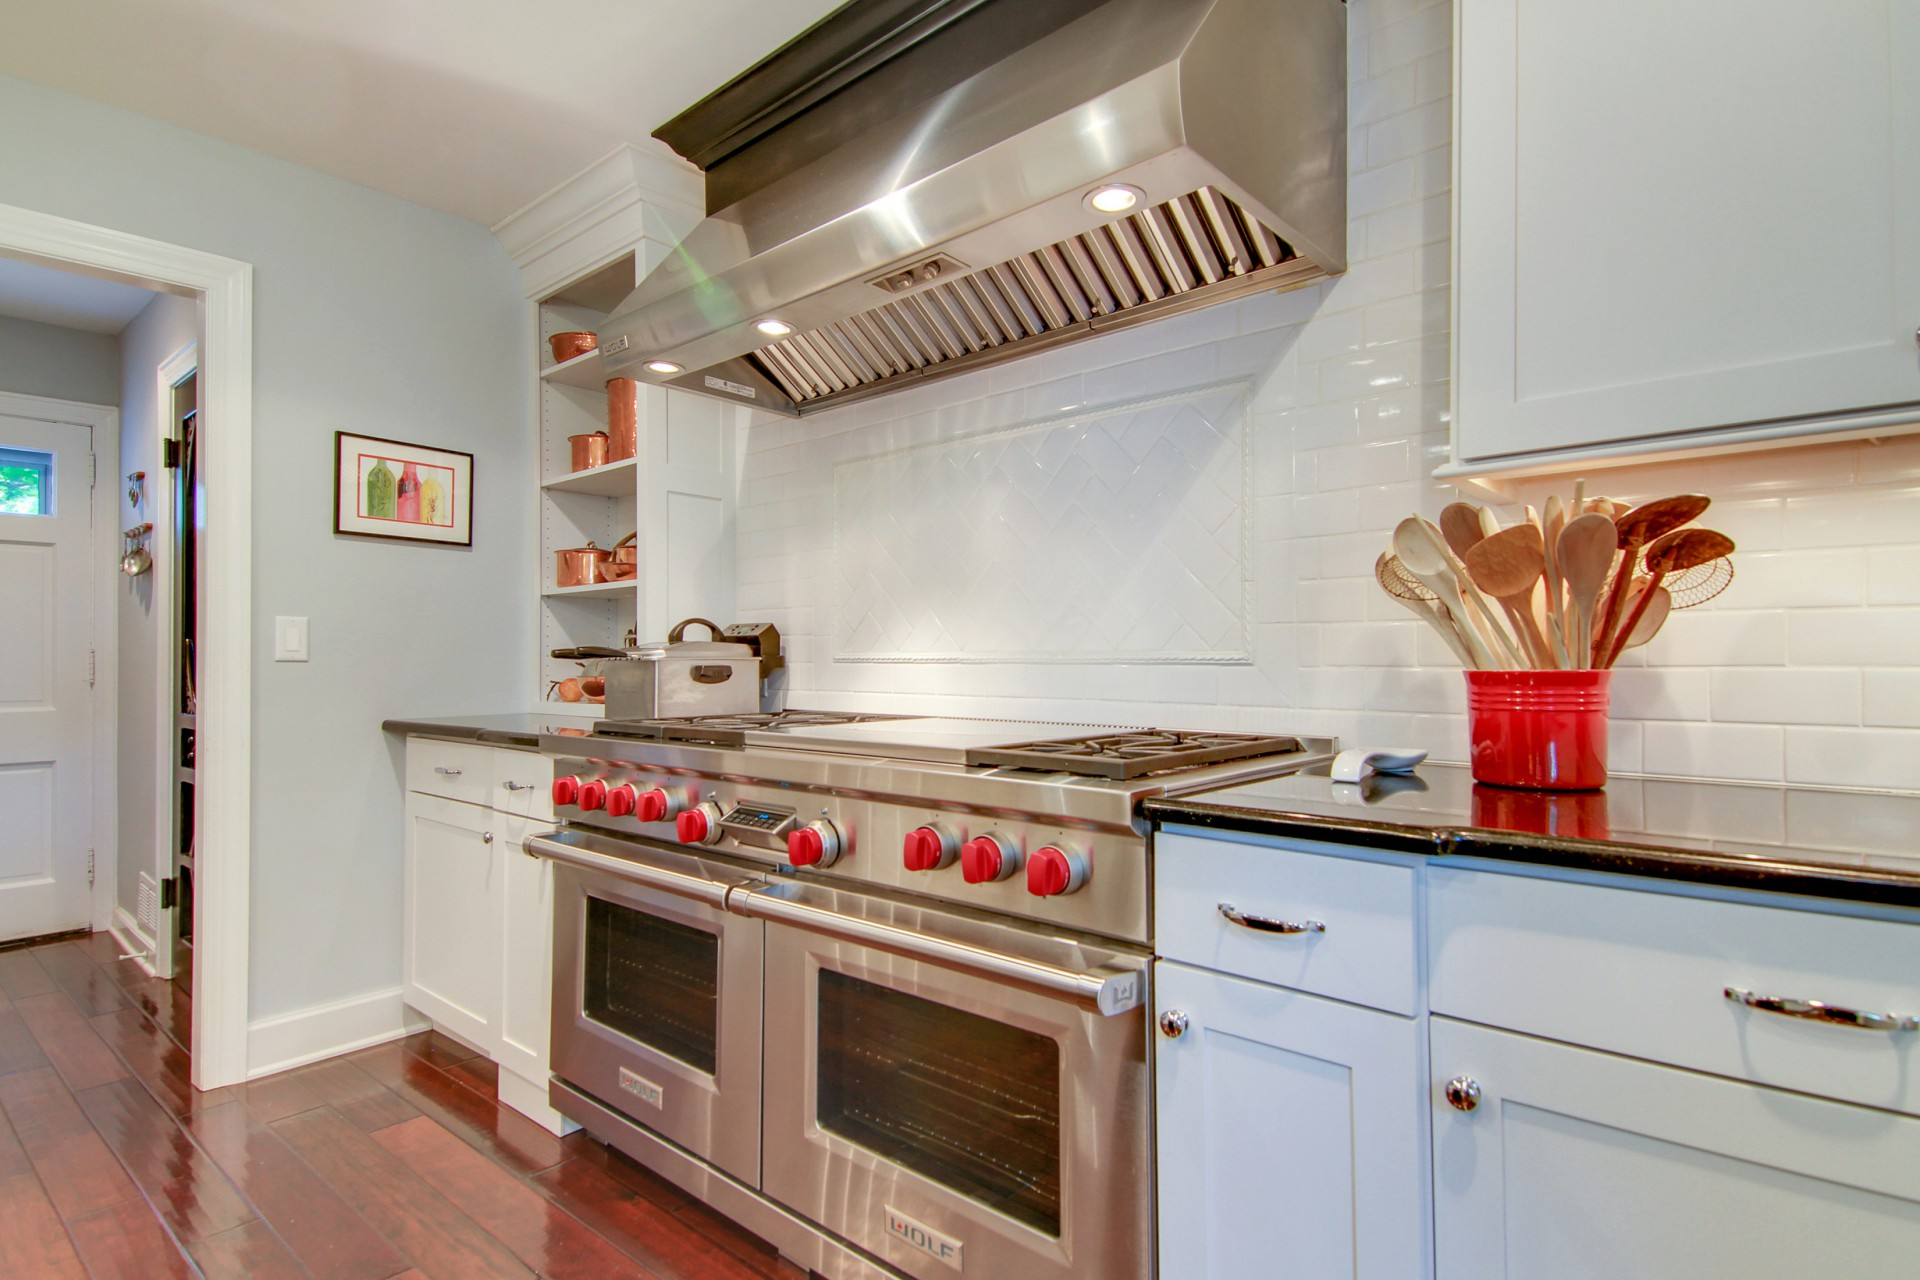 506 Longview Road Kitchen Photo